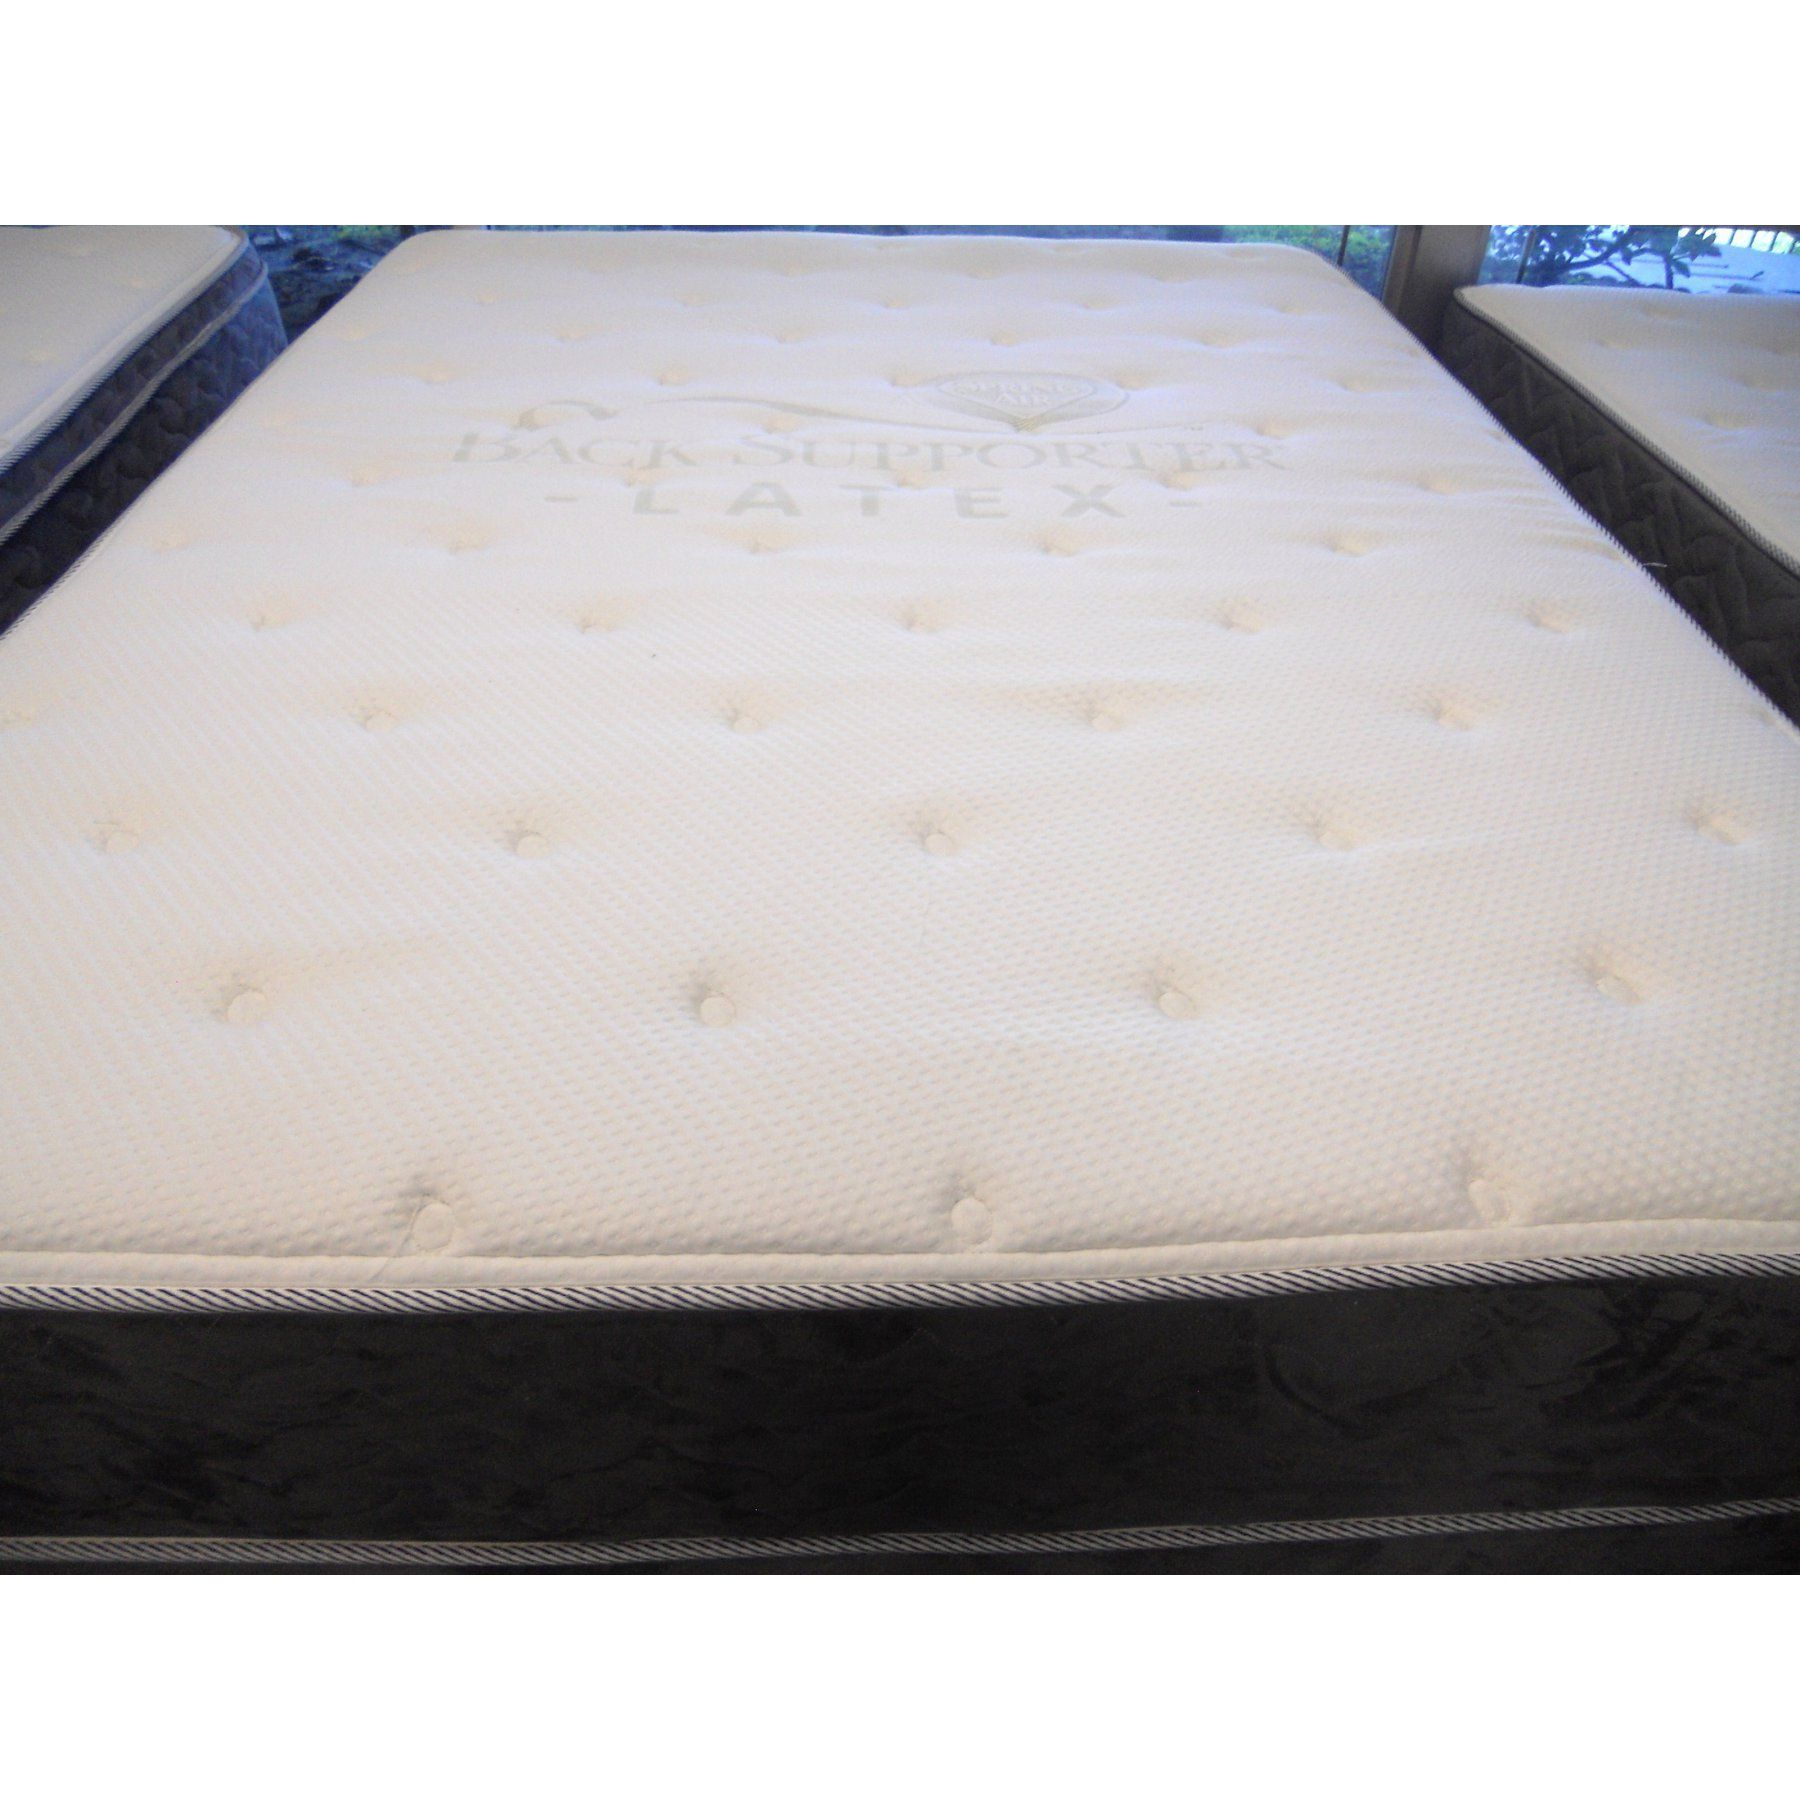 Spring Air Back Supporter Pillow Top Mattress and Box A